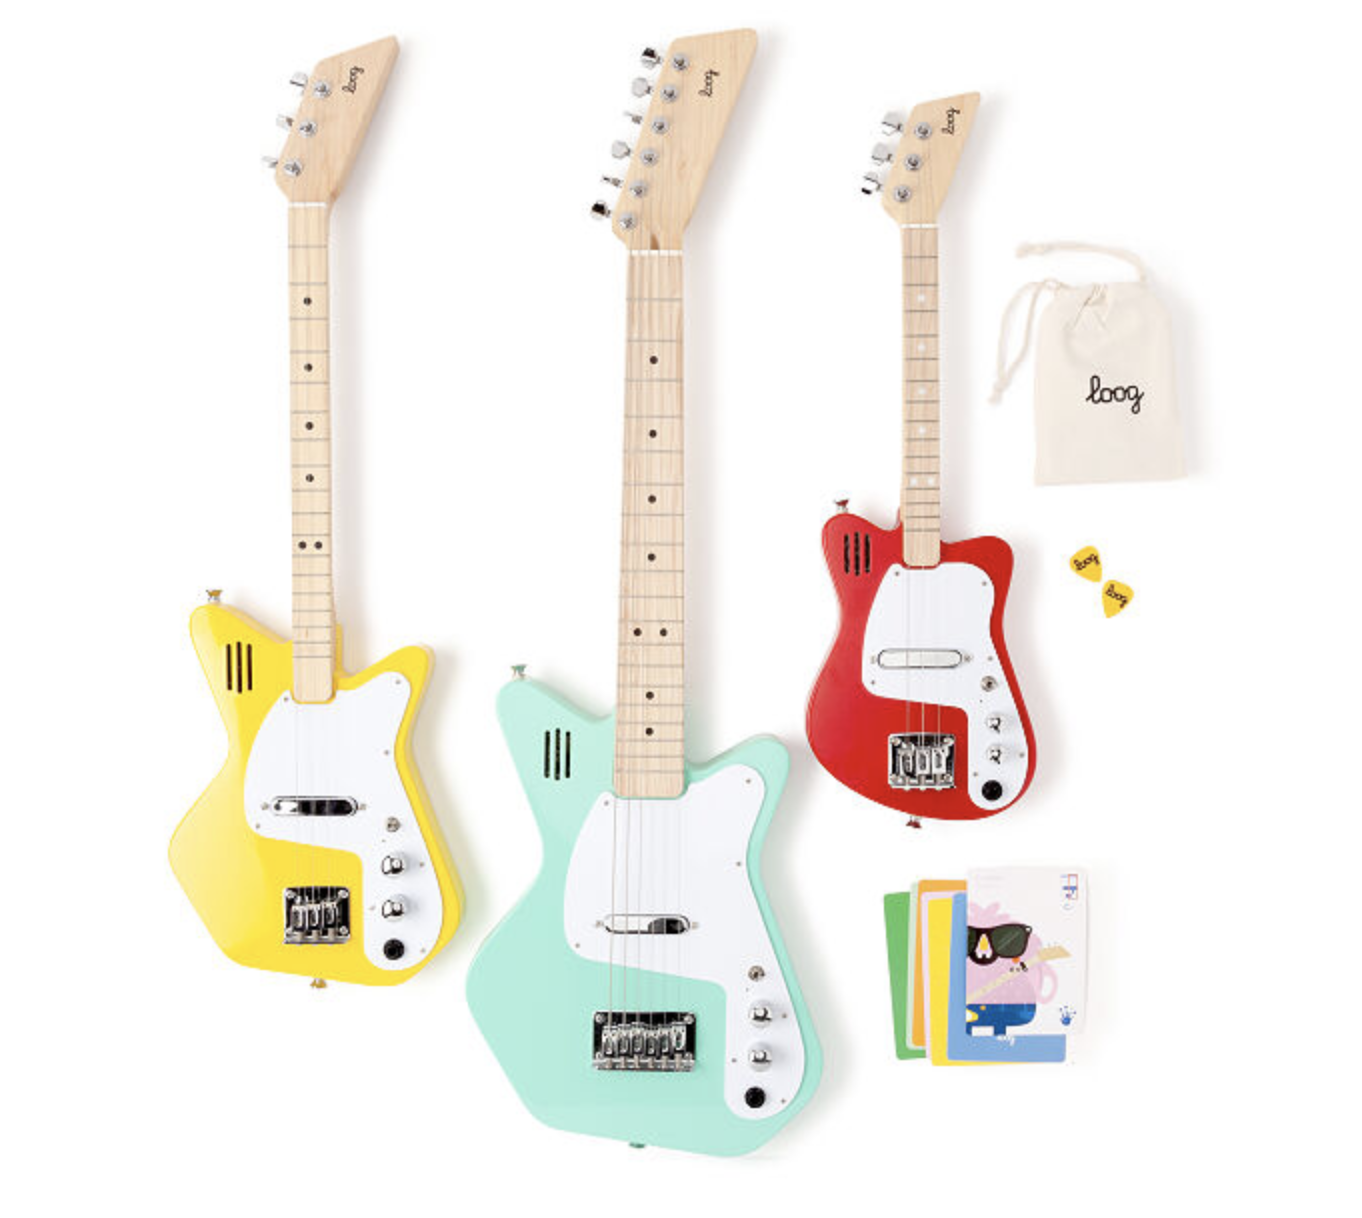 Electric Guitars for Kids' Gifts